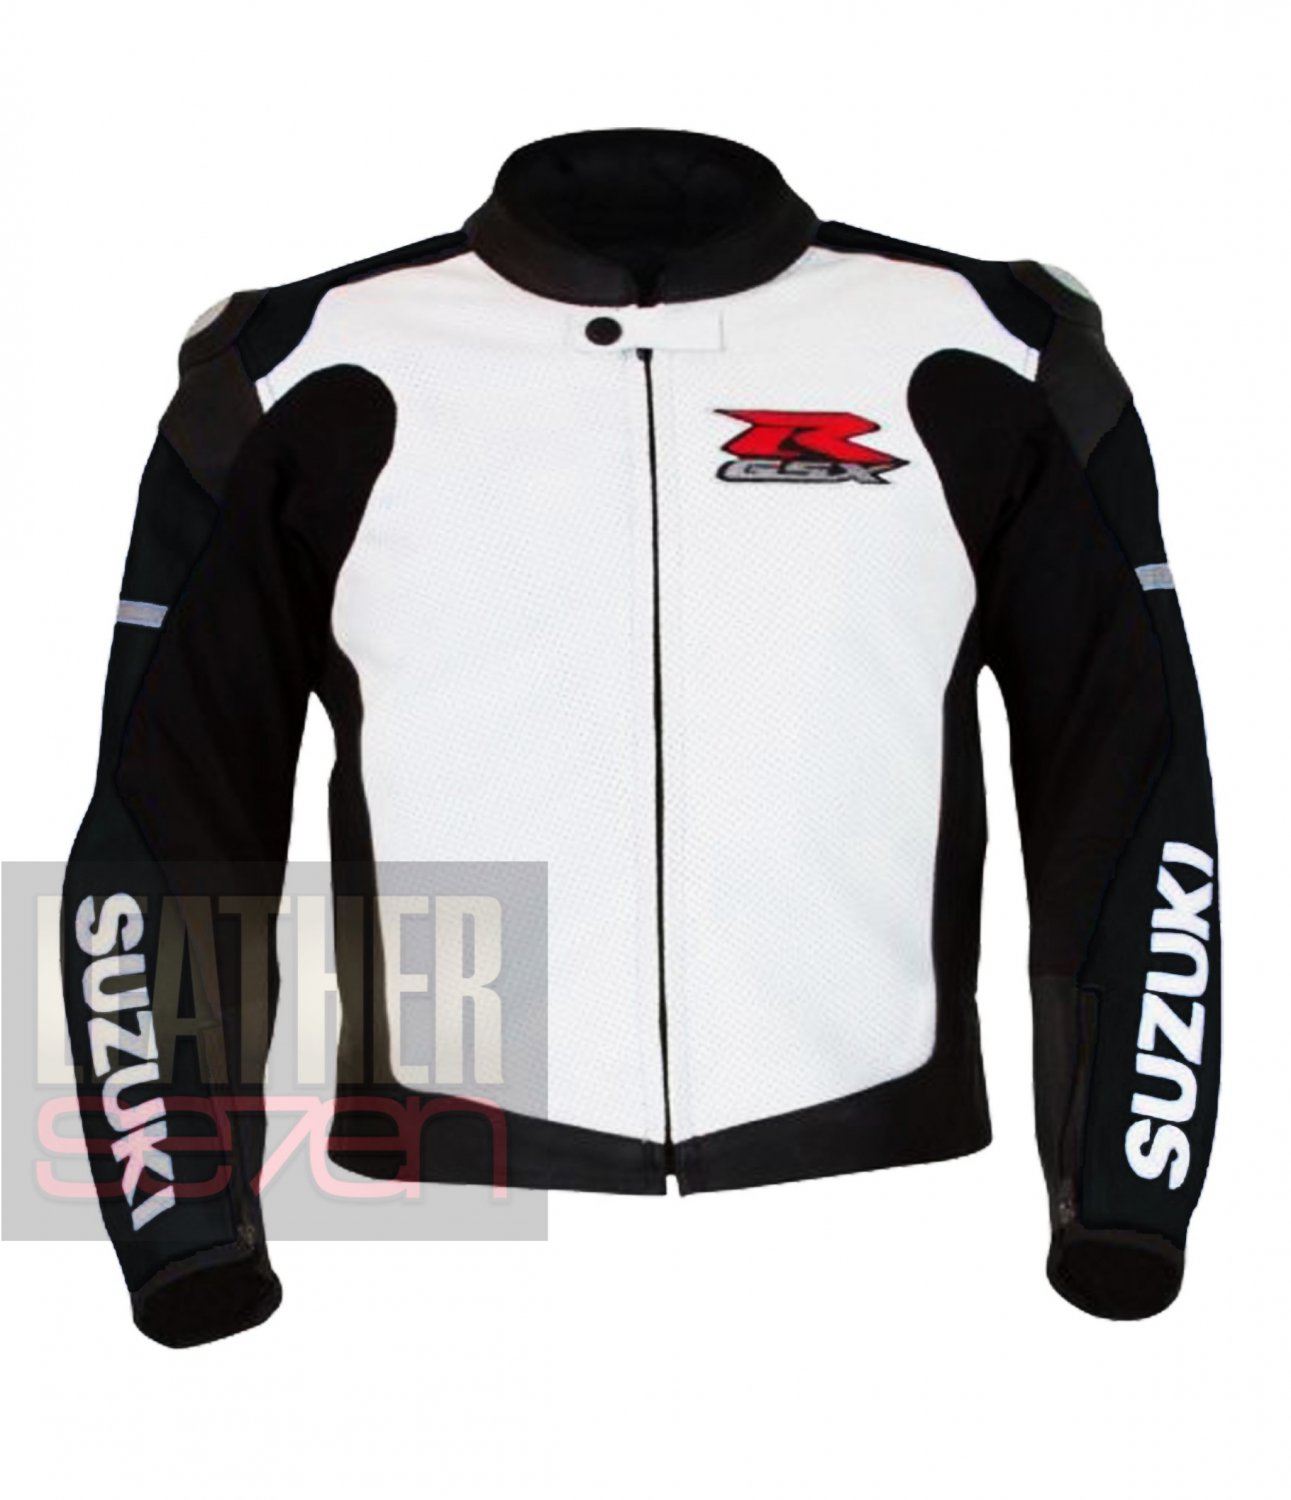 Suzuki 1078 Black Pure Cowhide Leather Safety Racing Jacket For Bike Racers